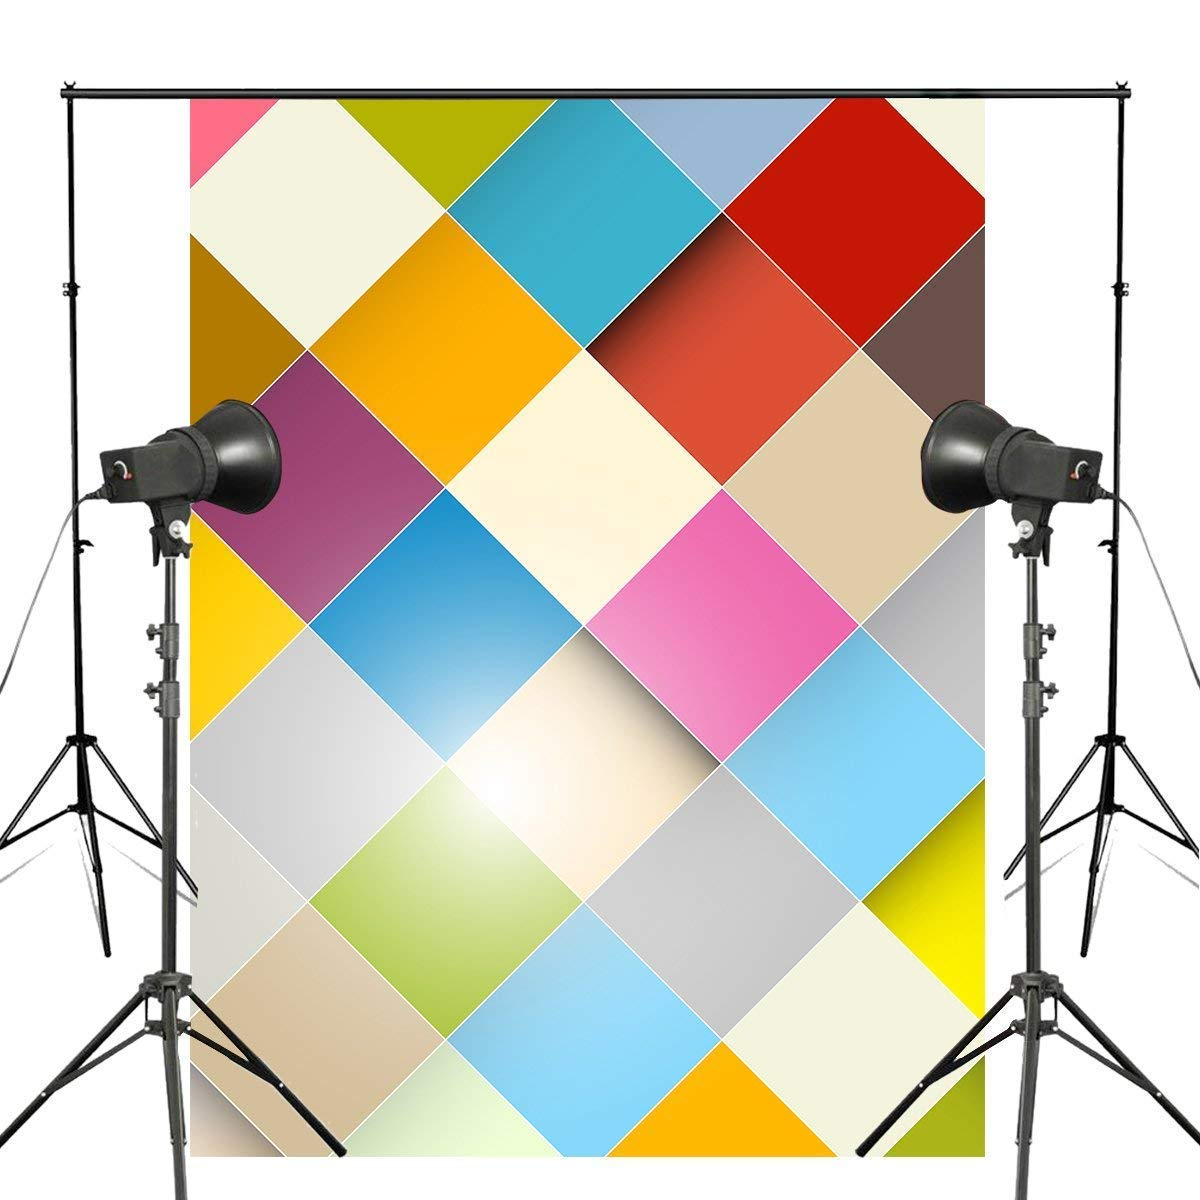 ERTIANANG 5x7ft Colorful Squares Photography Backdrops Kids Photo Studio Backdrop Children Photography Background Wall